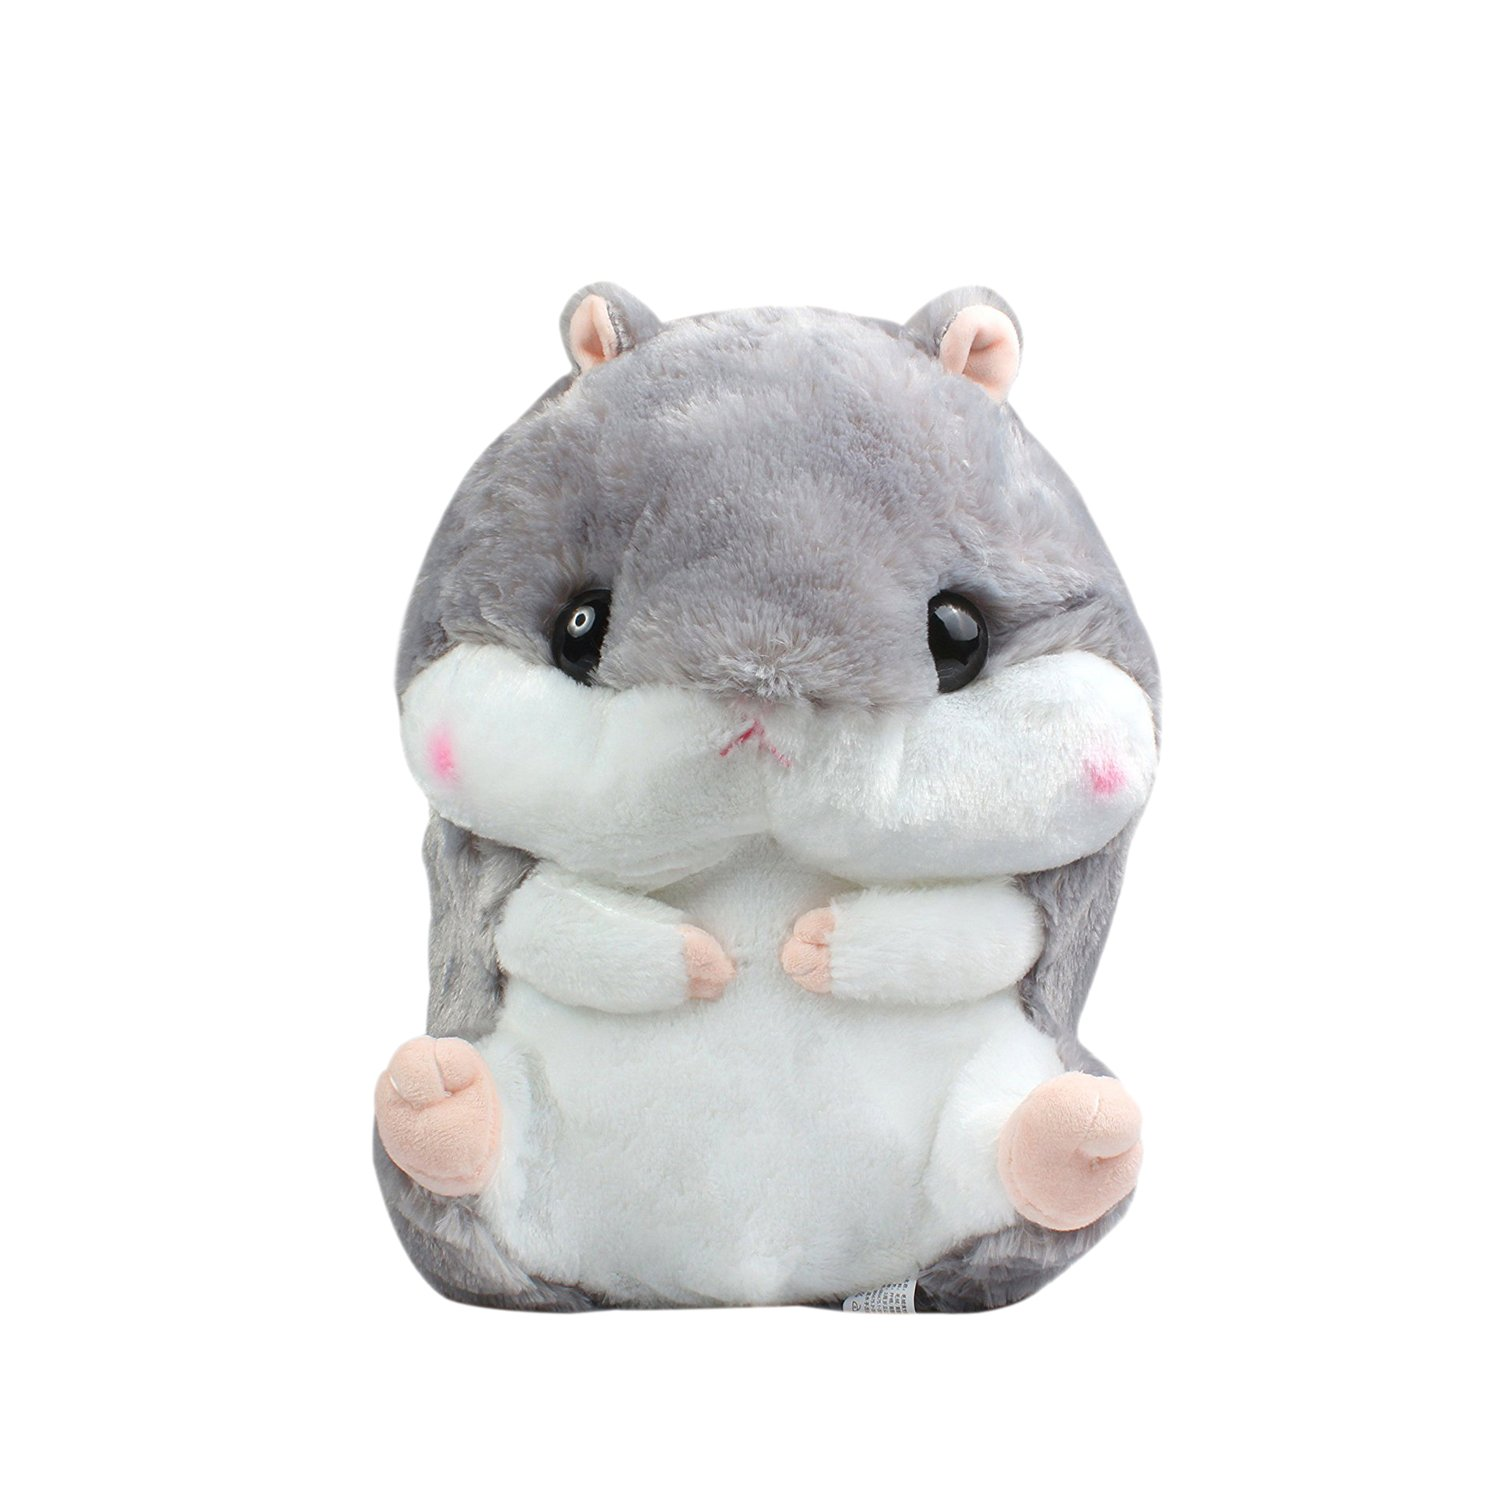 Crazy lin Baby Kids Animals Stuffed Doll Soft Plush 1 Hamster Throw Pillow With 1 Blanket (Hamster:15.811.8 inch, Grey) by Crazy lin (Image #2)